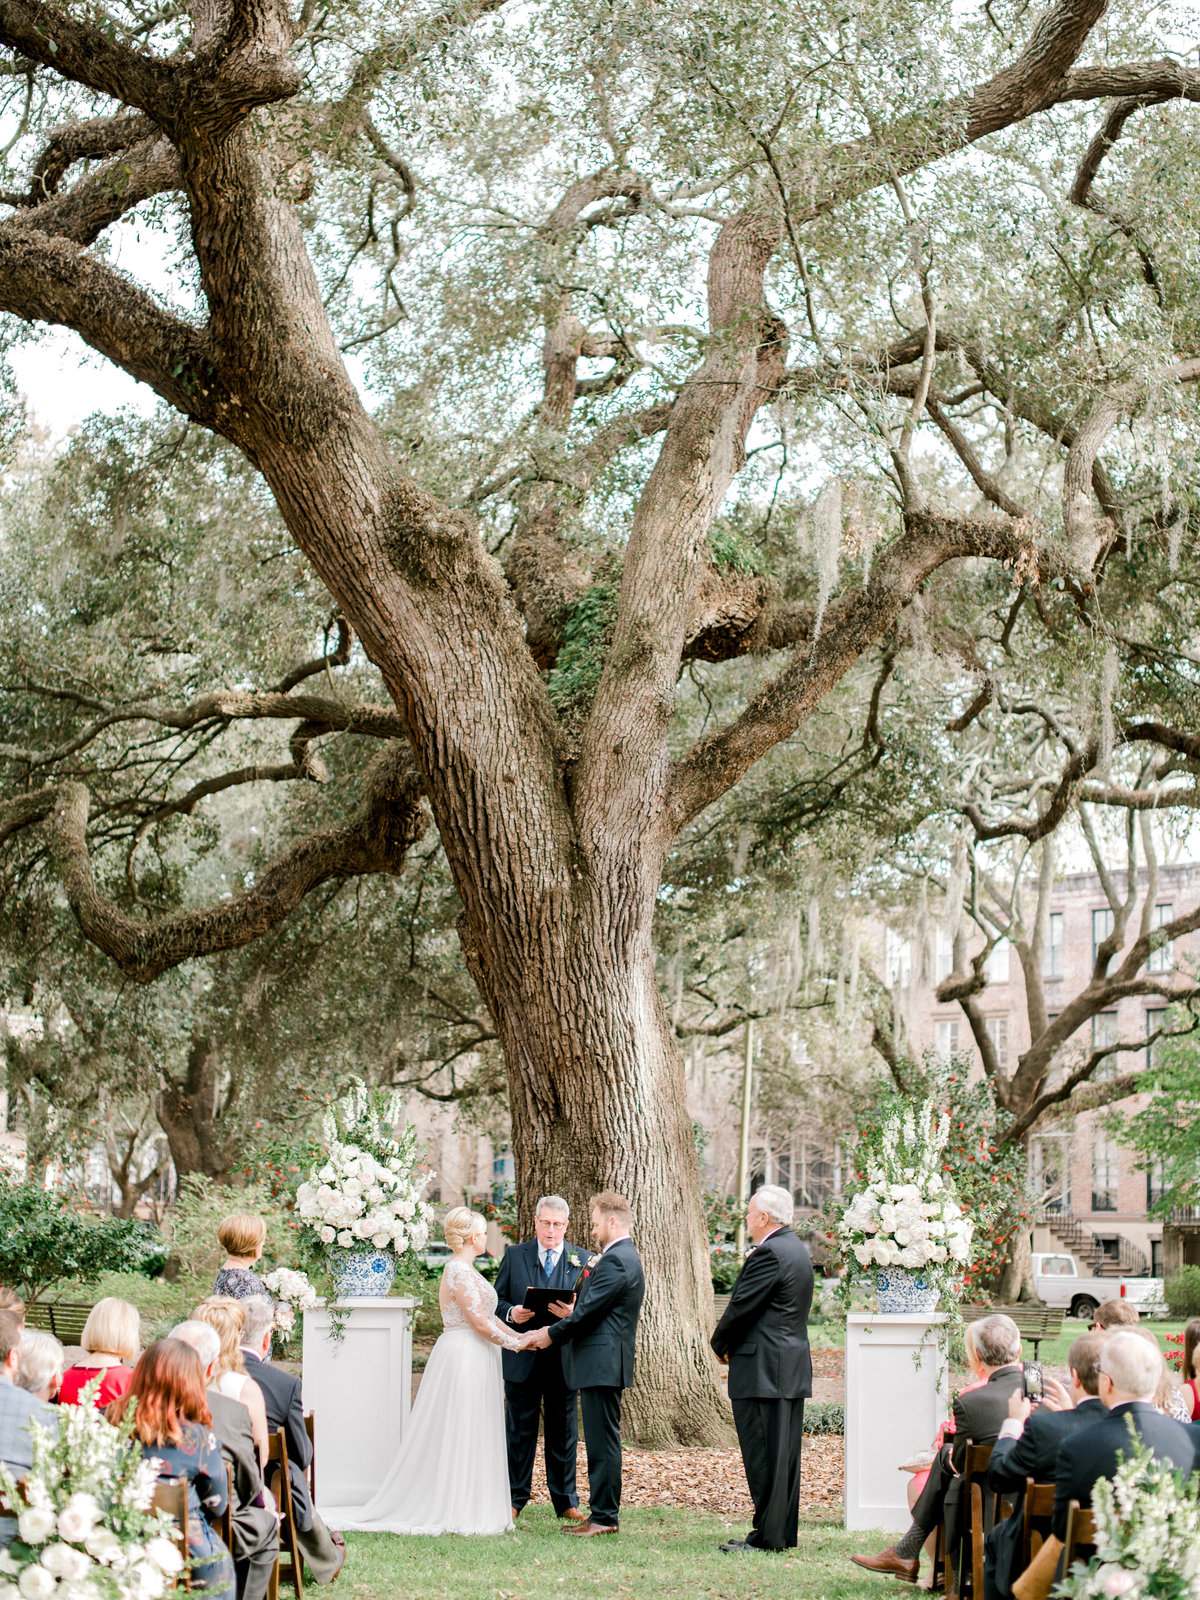 Wedding ceremony chatham square savannah under the oaks and Spanish Moss